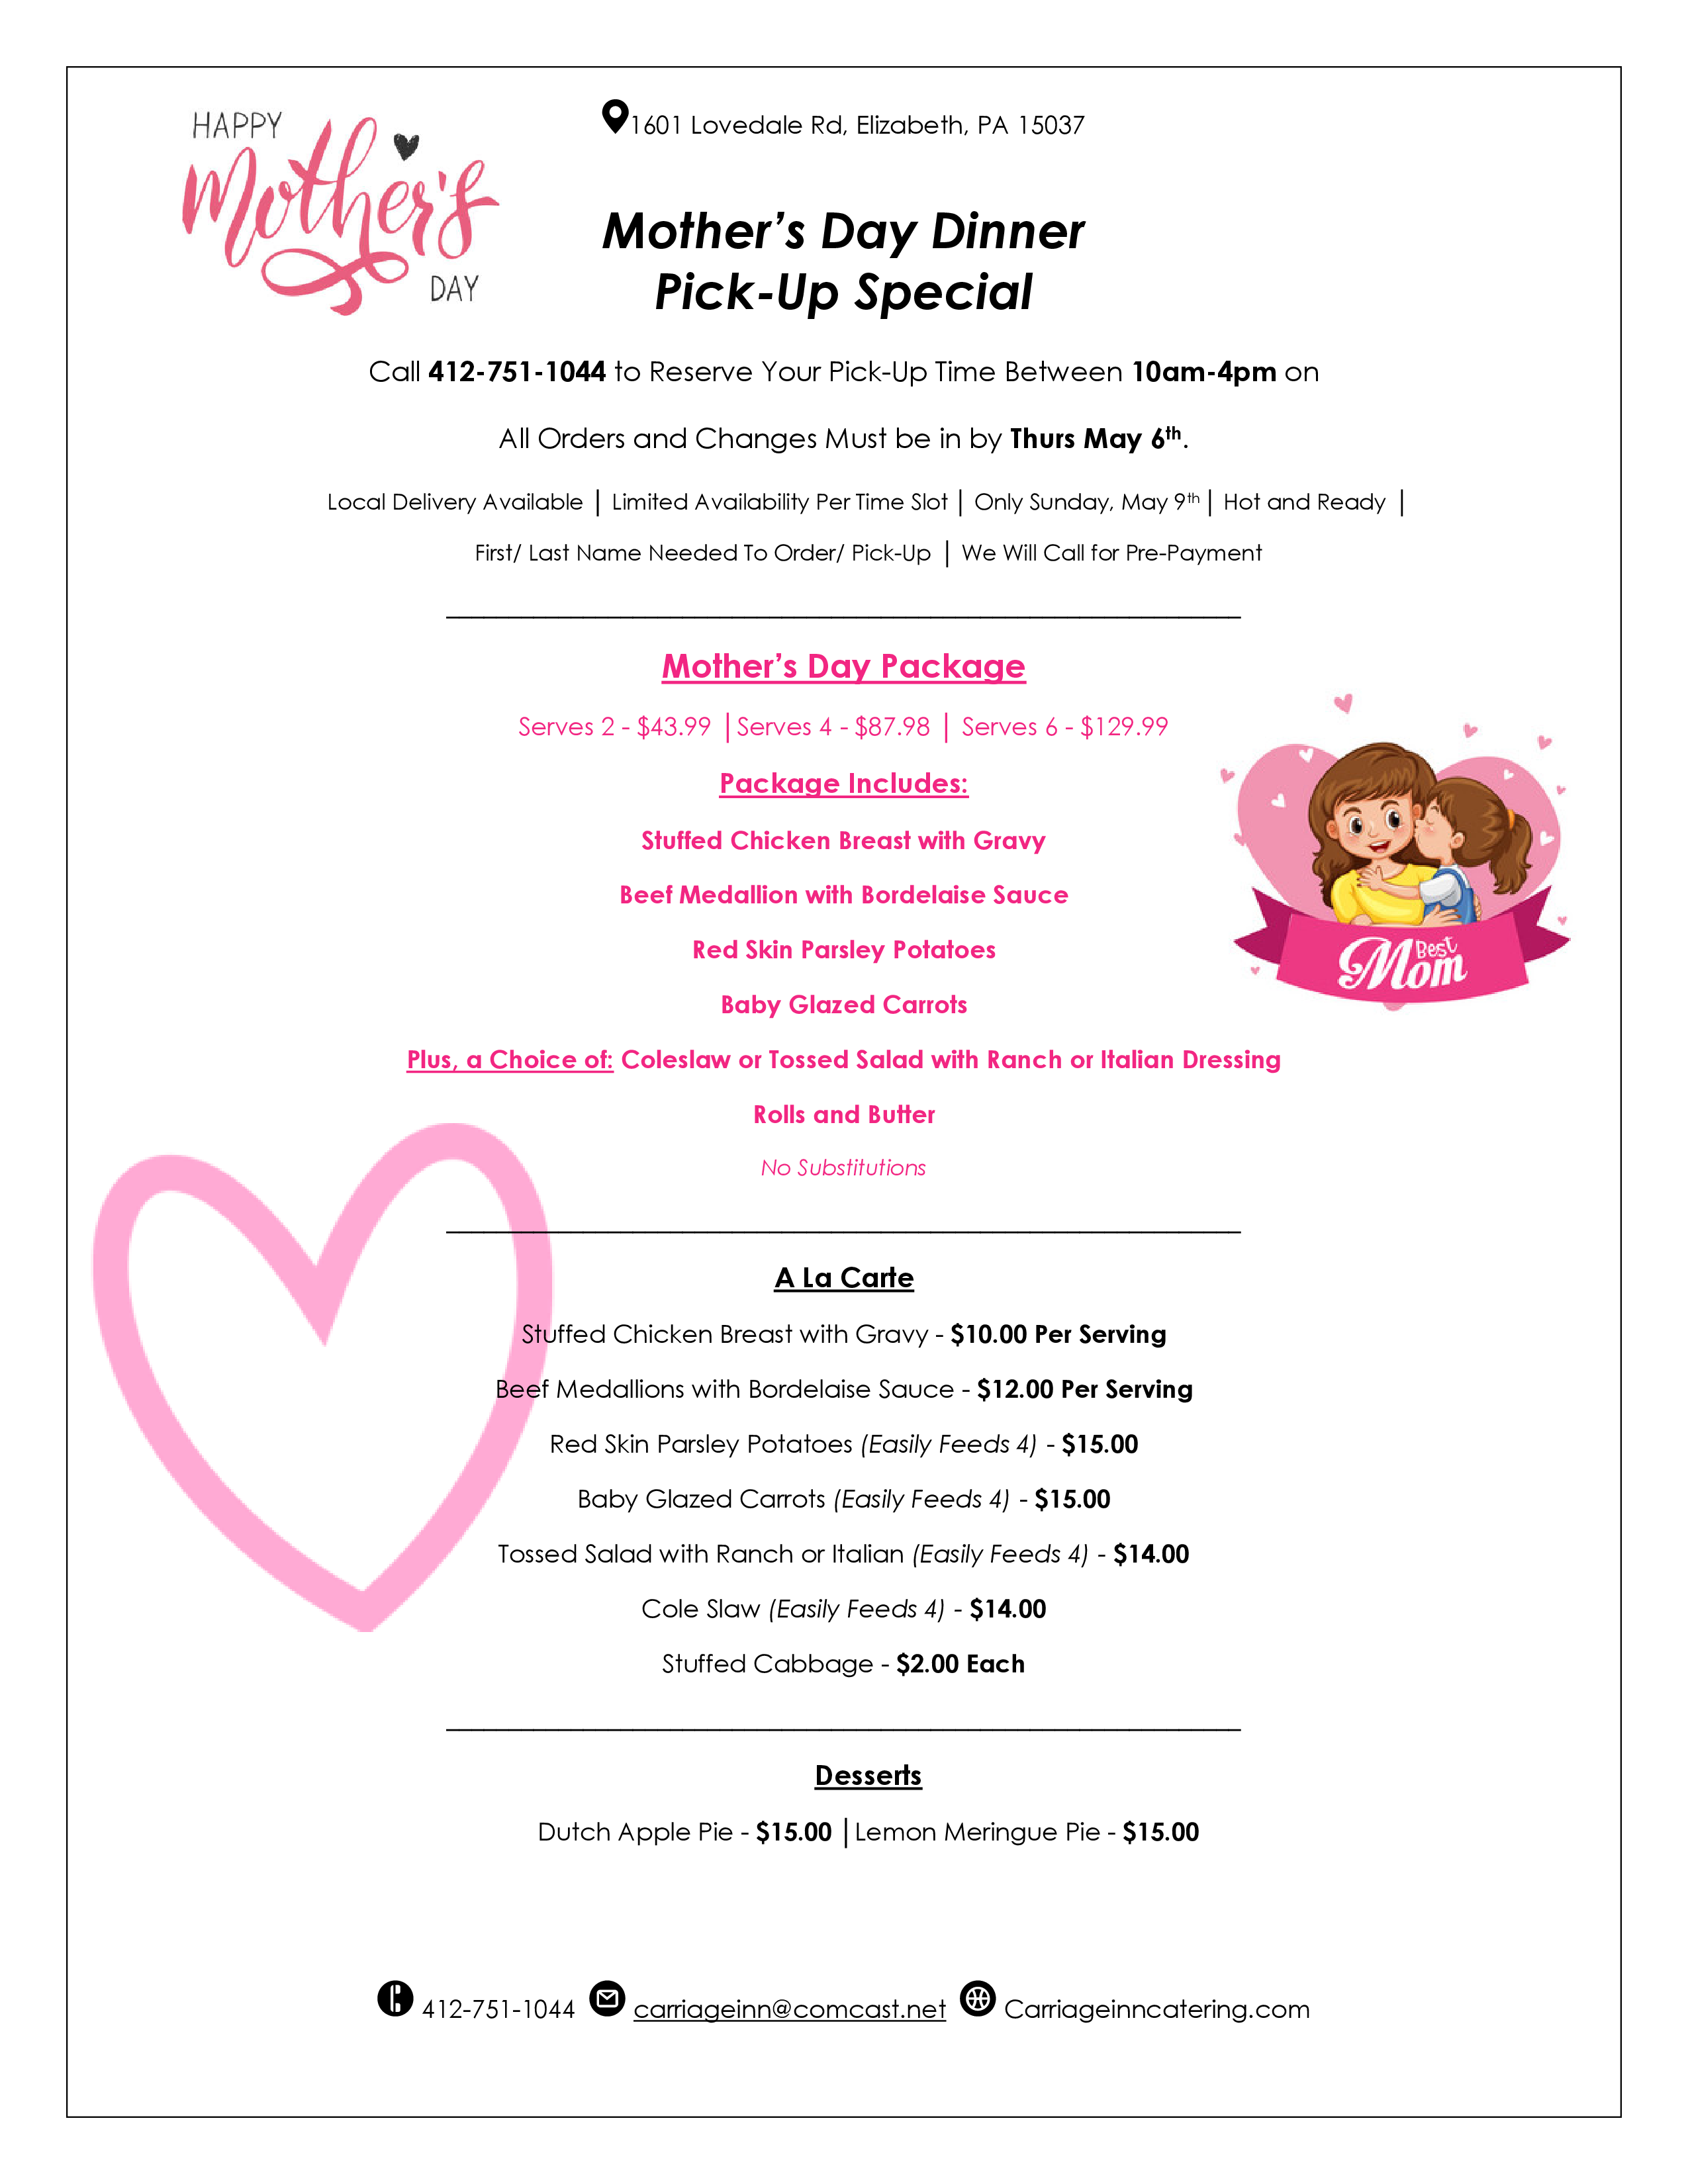 Mother's Day Dinner Pick-Up Special.  Call 412-751-1044 to Reserve Your Pick-Up Time Between 10am-4pm on  All Orders and Changes Must be in by Thurs May 6th. Local Delivery Available. Limited Availability Per Time Slot. Only Sunday, May 9th. Hot and Ready. First / Last Name Needed To Order / Pick-Up. We Will Call for Pre-Payment. Mother's Day Package Serves 2 - $43.99. Serves 4 - $87.98. Serves 6 - $129.99. Package Includes: Stuffed Chicken Breast with Gravy,  Beef Medallion with Bordelaise Sauce,  Red Skin Parsley Potatoes,  Baby Glazed Carrots,  Plus, a Choice of: Coleslaw or Tossed Salad with Ranch or Italian Dressing Rolls and Butter.  No Substitutions. A La Carte: Stuffed Chicken Breast with Gravy - $10.00 Per Serving. Beef Medallions with Bordelaise Sauce - $12.00 Per Serving. Red Skin Parsley Potatoes (Easily Feeds 4) - $15.00. Baby Glazed Carrots (Easily Feeds 4) - $15.00. Tossed Salad with Ranch or Italian (Easily Feeds 4) - $14.00. Cole Slaw (Easily Feeds 4) - $14.00. Stuffed Cabbage - $2.00 Each. Desserts: Dutch Apple Pie - $15.00. Lemon Meringue Pie - $15.00.